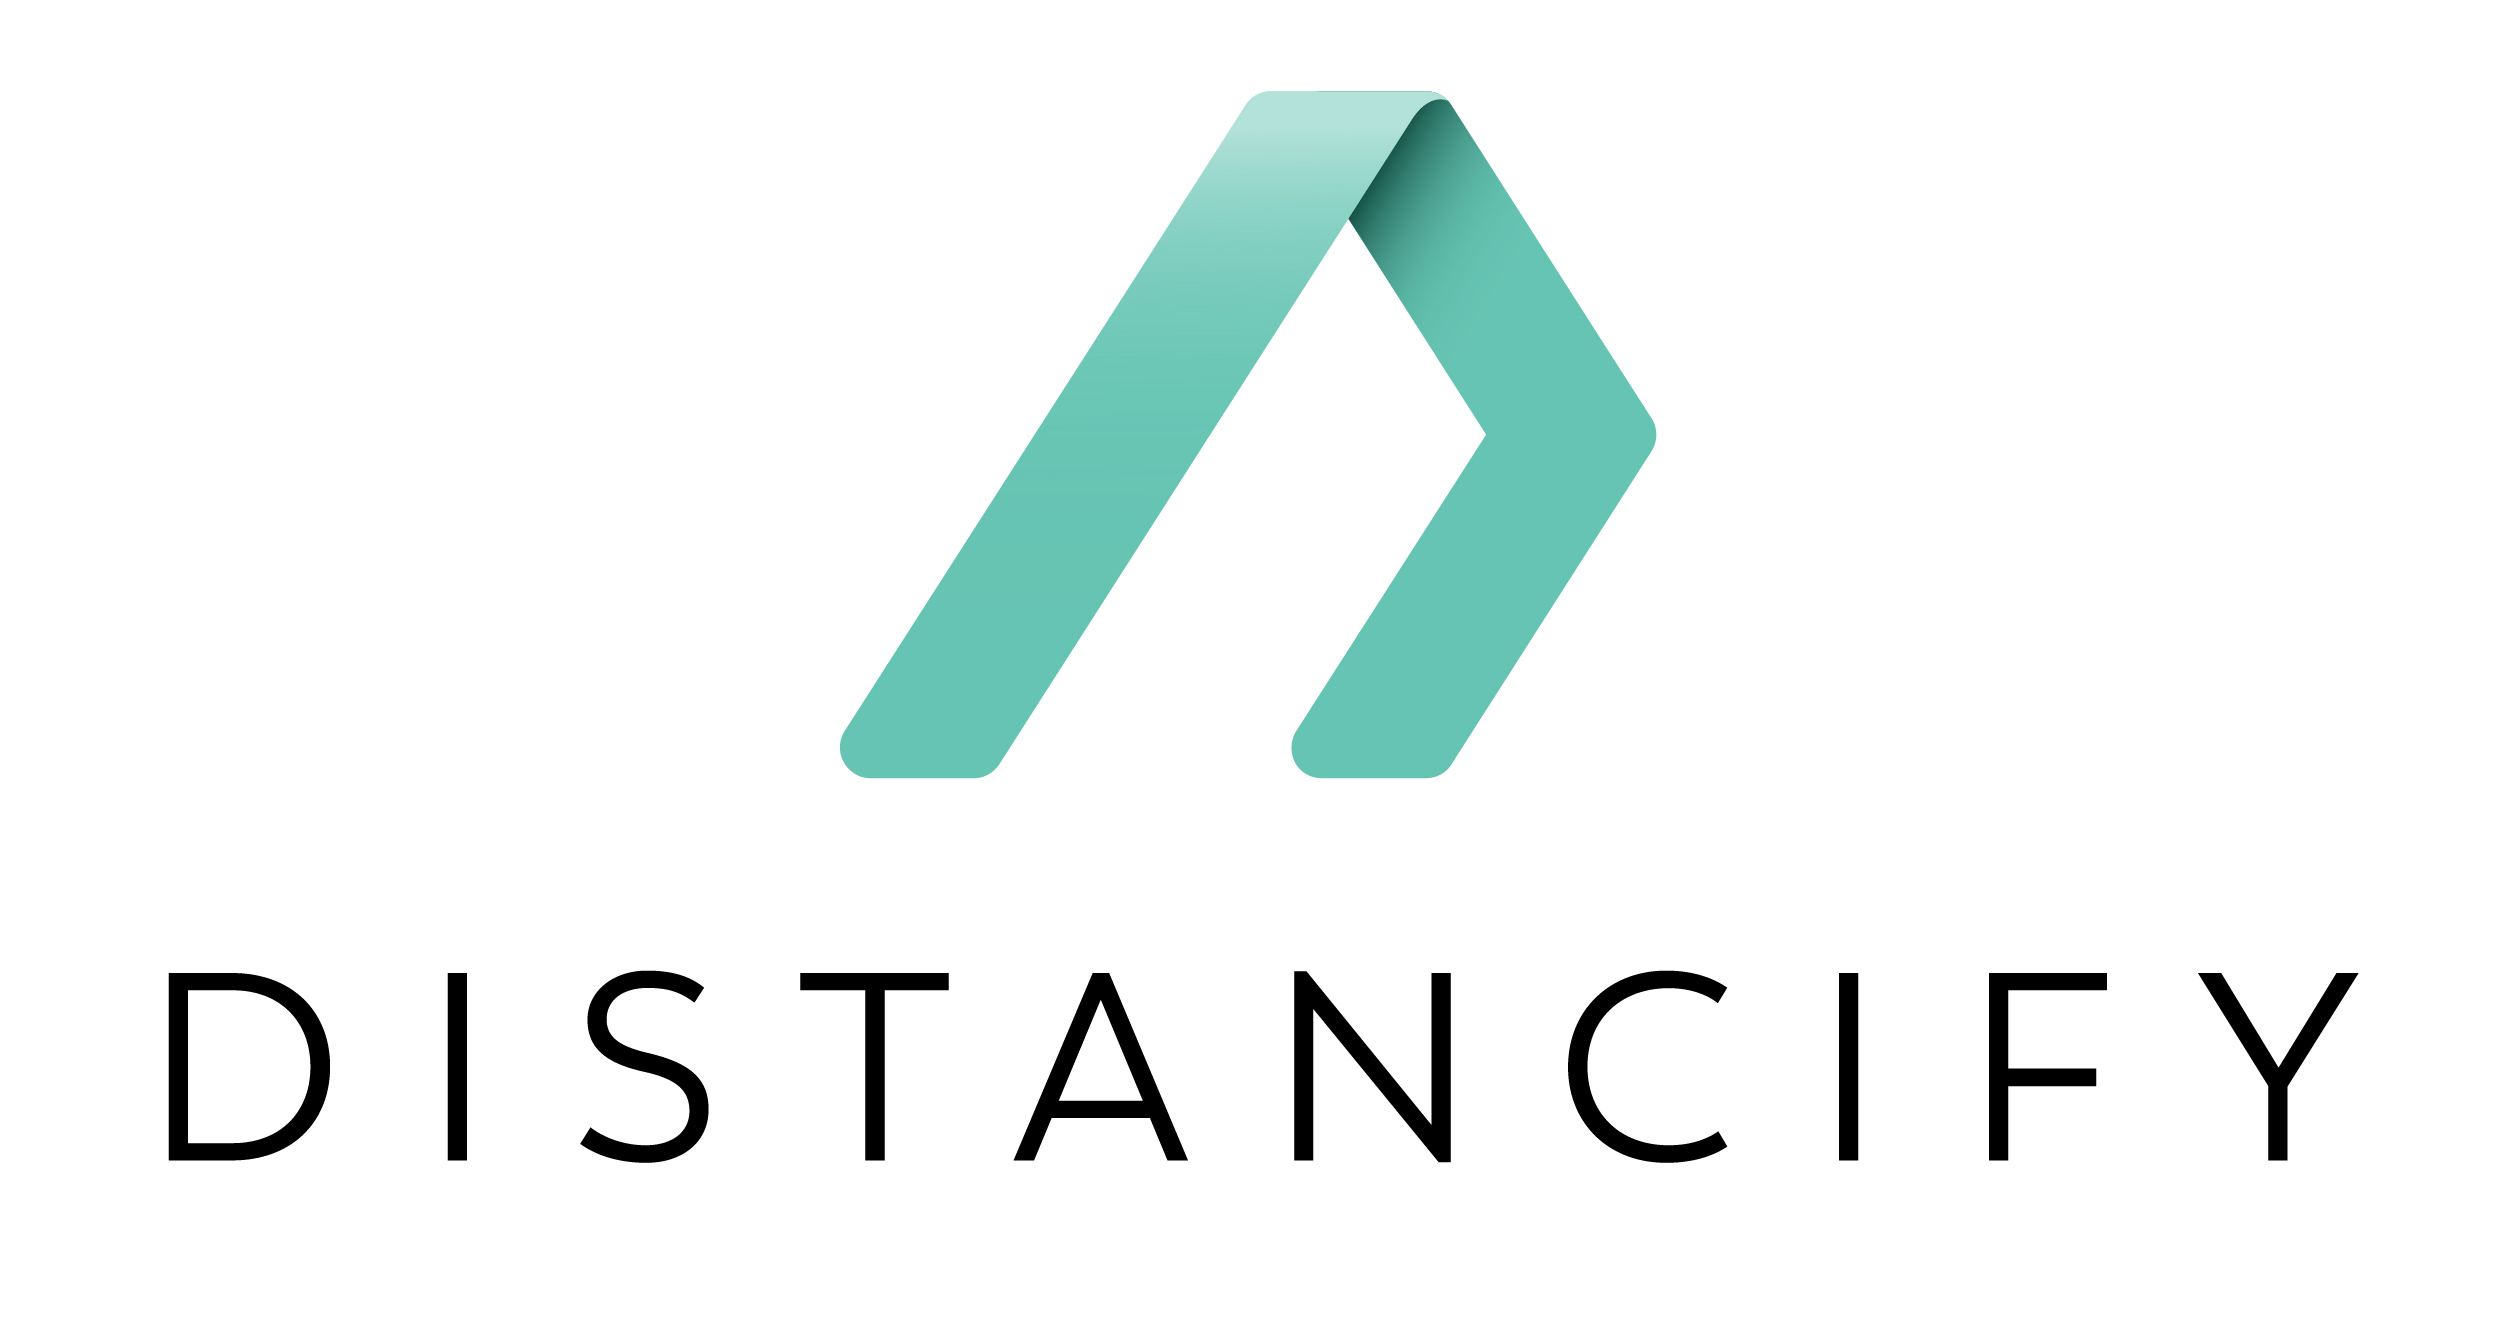 Distancify